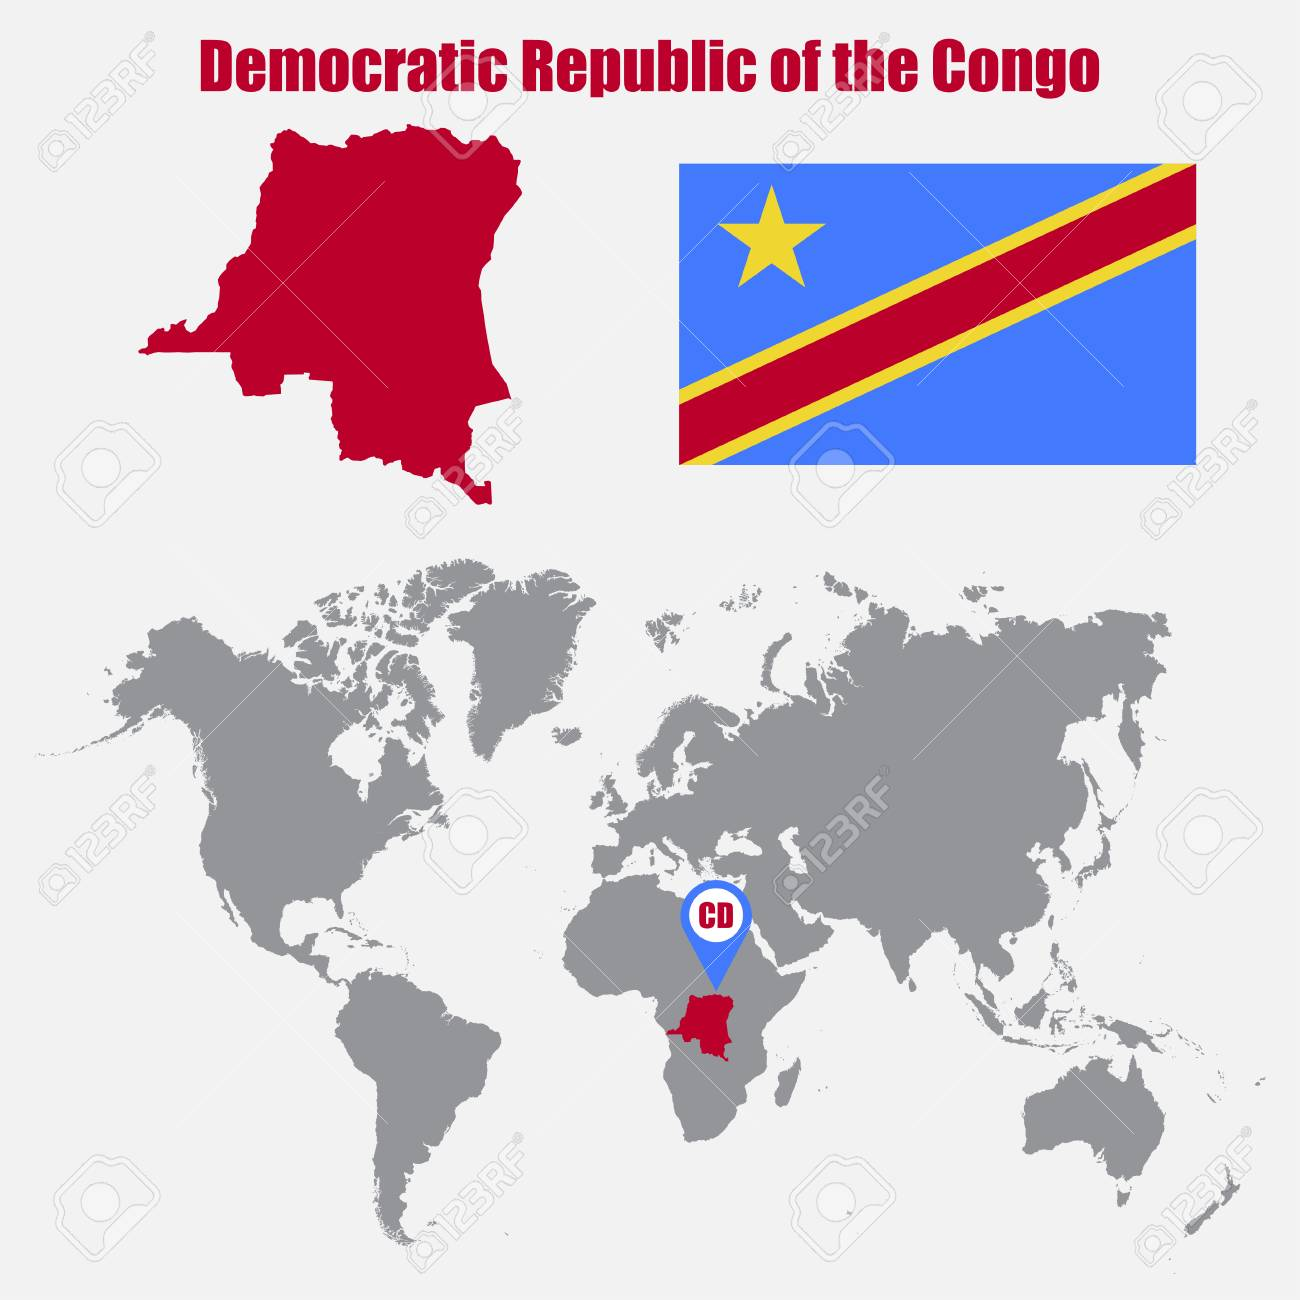 Picture of: Democratic Republic Of The Congo Map On A World Map With Flag Royalty Free Cliparts Vectors And Stock Illustration Image 62688865